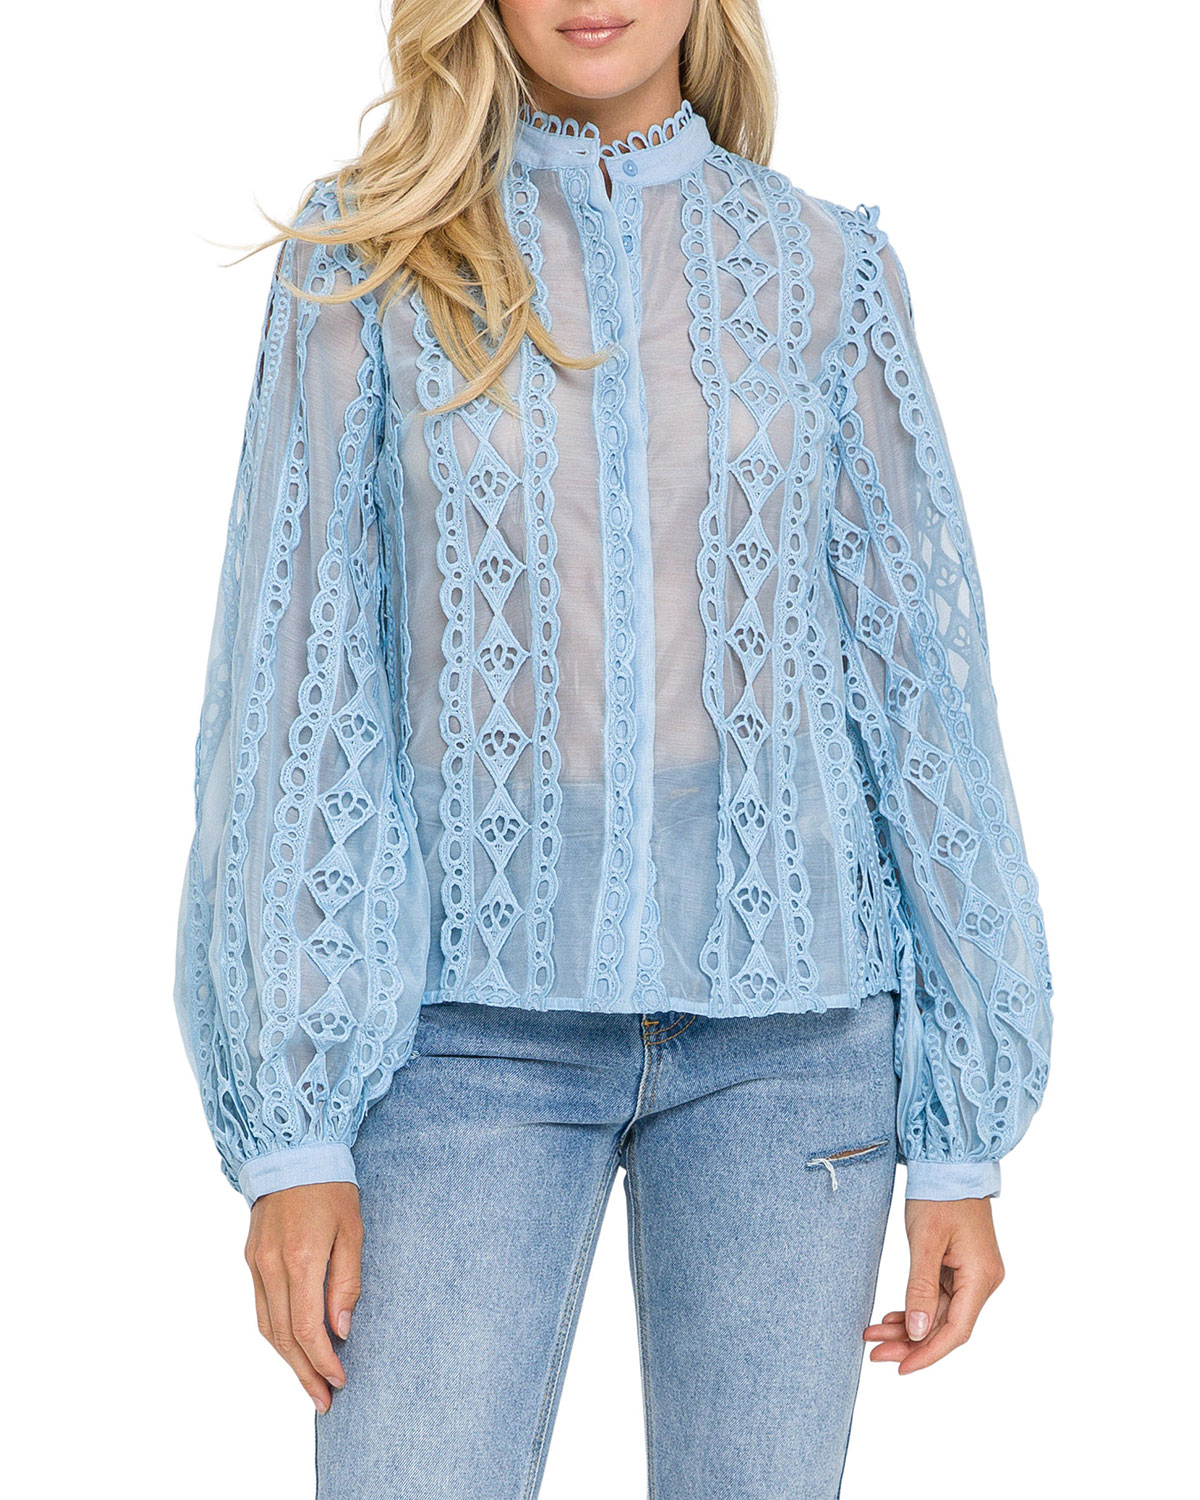 Lace-Trim Banded-Collar Blouse